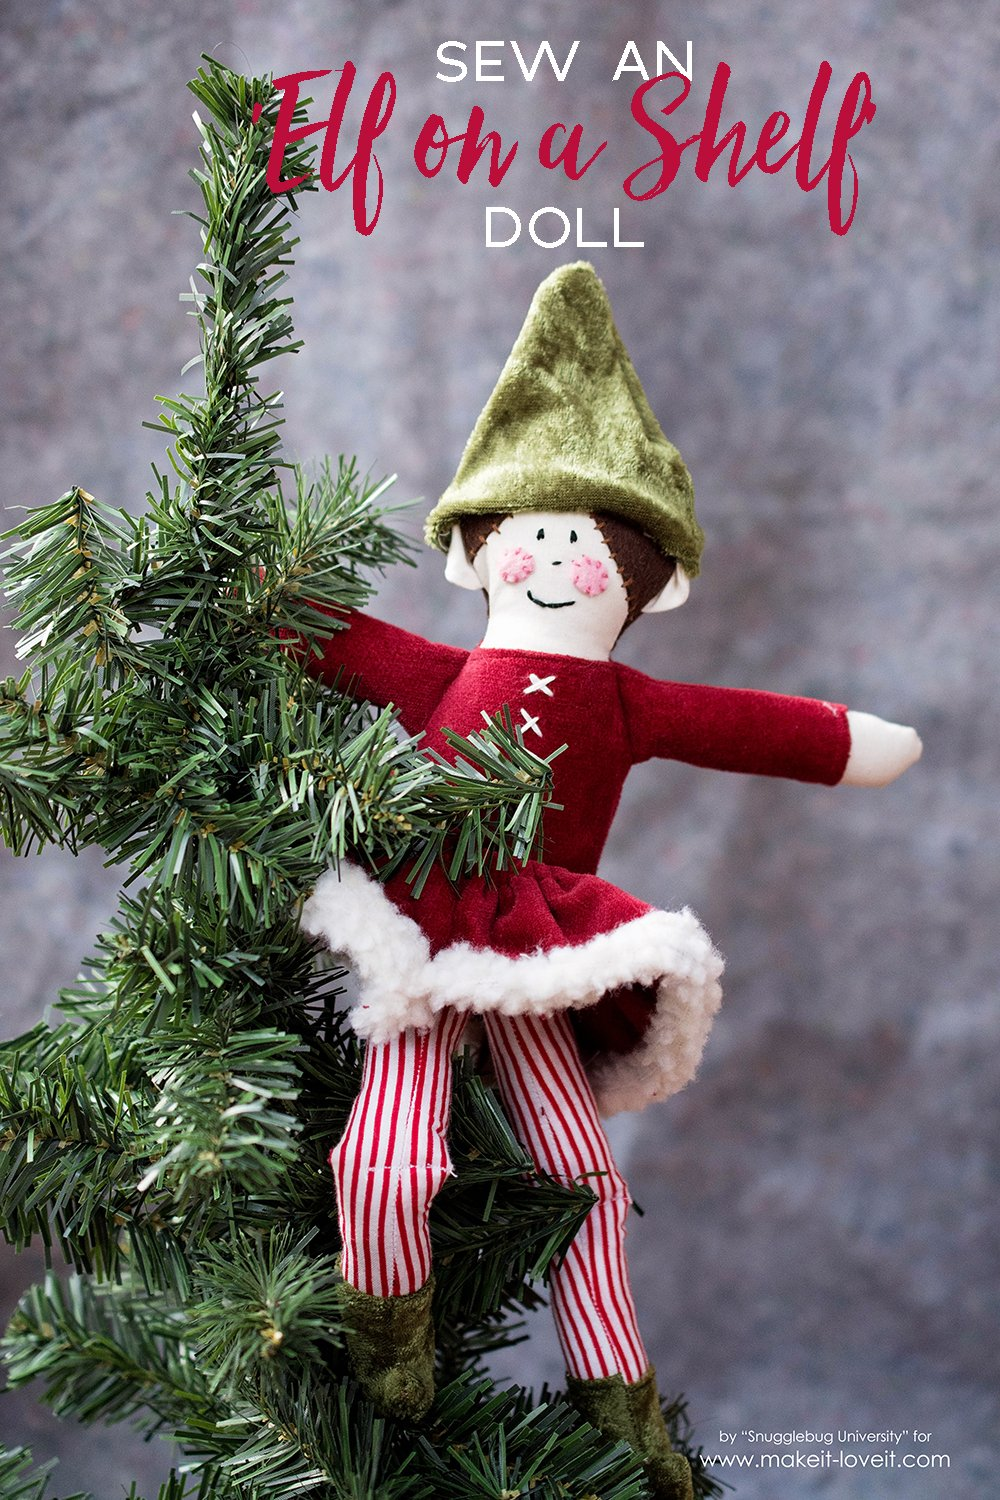 Sew an elf on a shelf doll